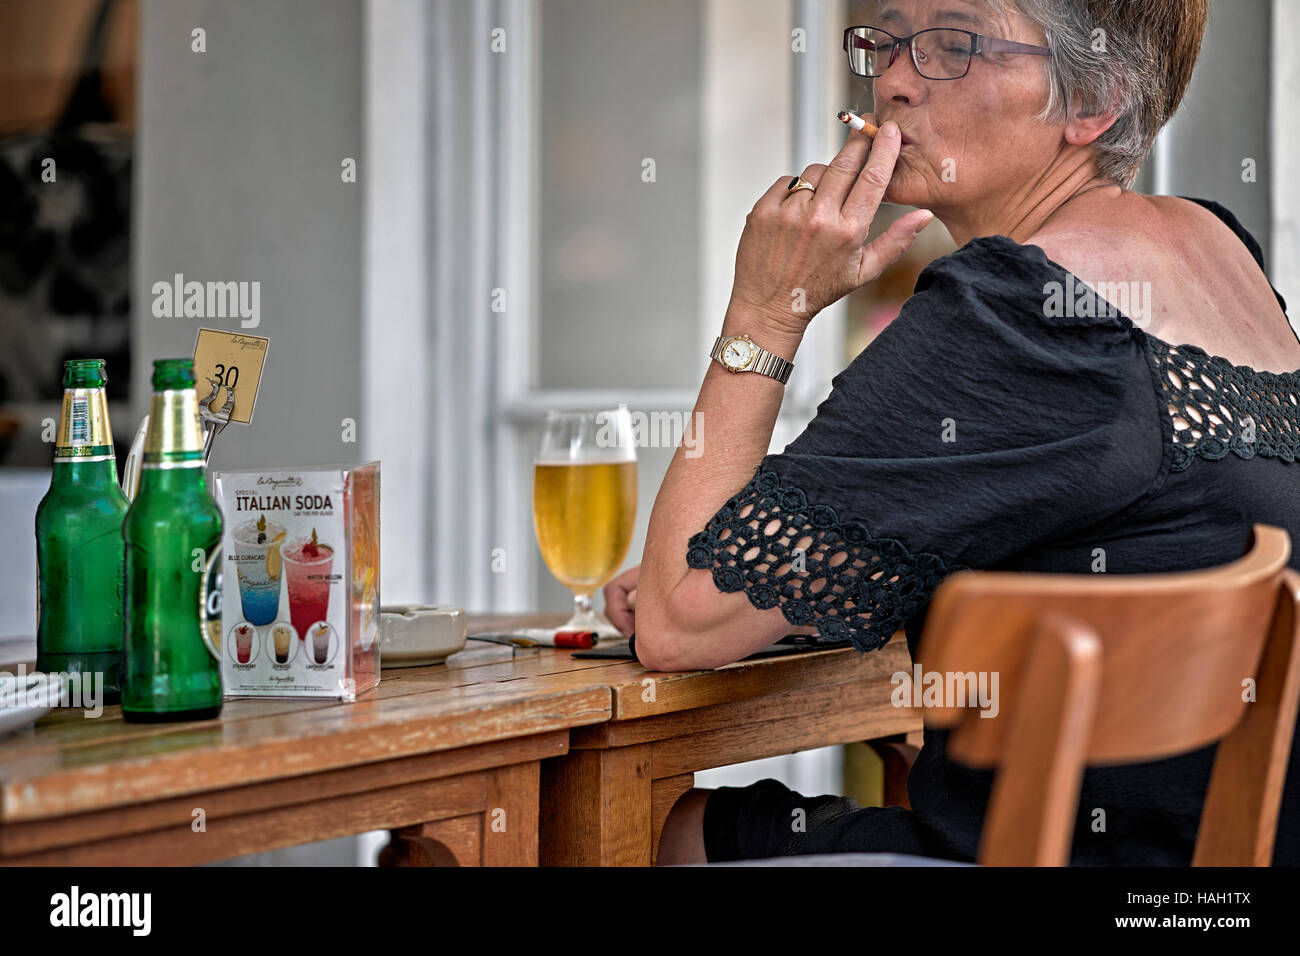 https://c1.alamy.com/comp/HAH1TX/mature-woman-smoking-cigarette-and-drinking-alcohol-HAH1TX.jpg